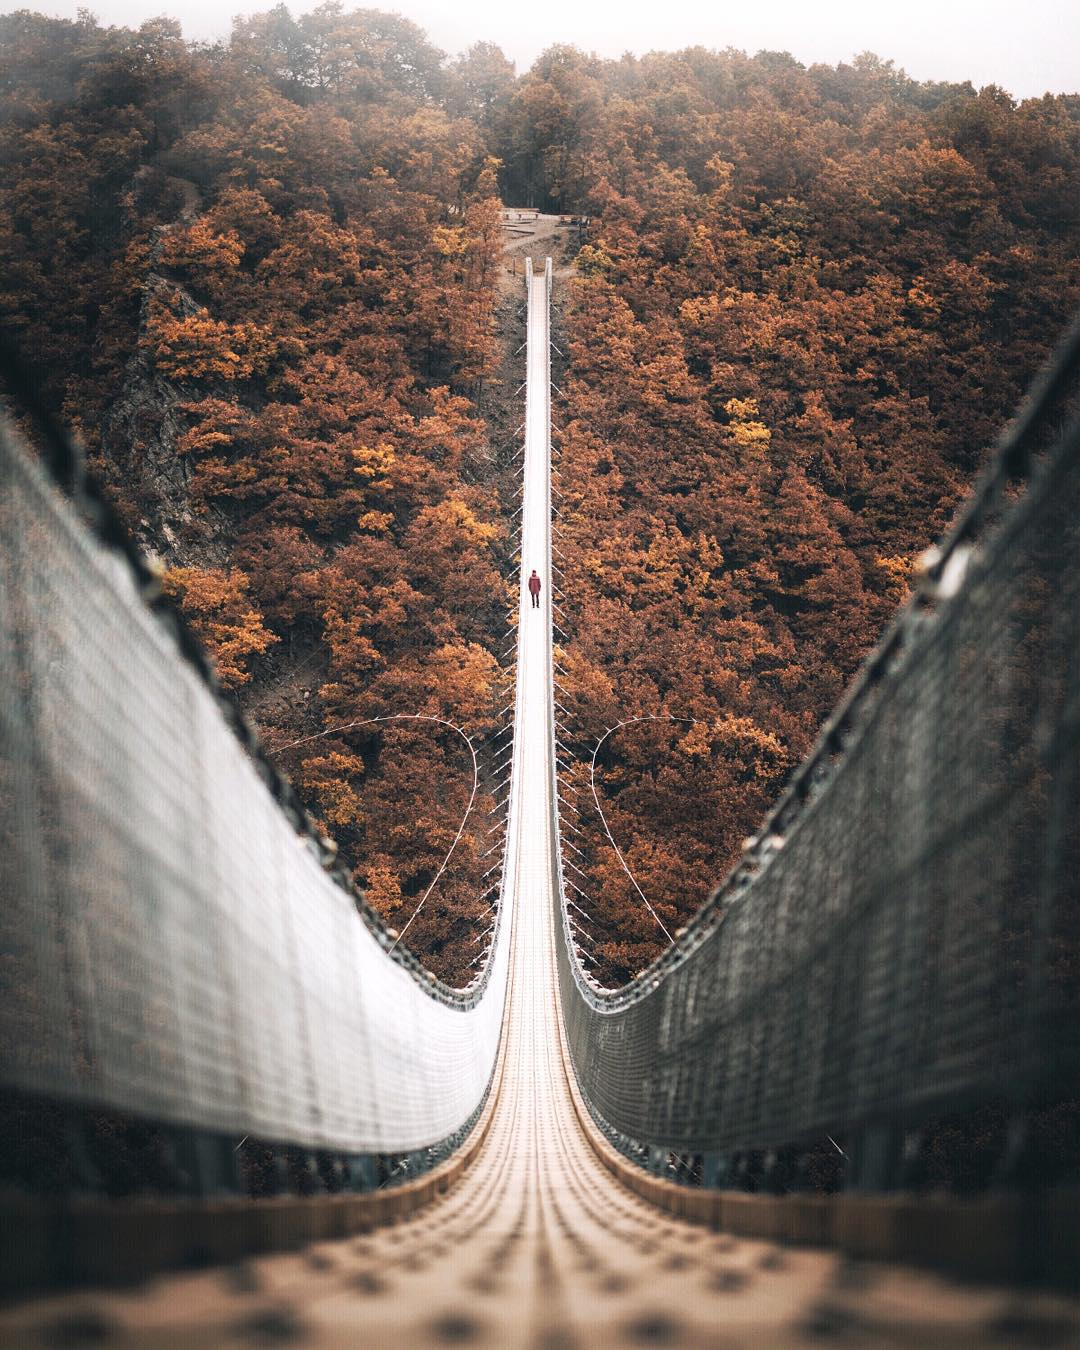 Geierlay rope suspension bridge, Germany | Photo by Johannes H (@pangeaproductions on IG) https://t.co/VExJyxhLkZ